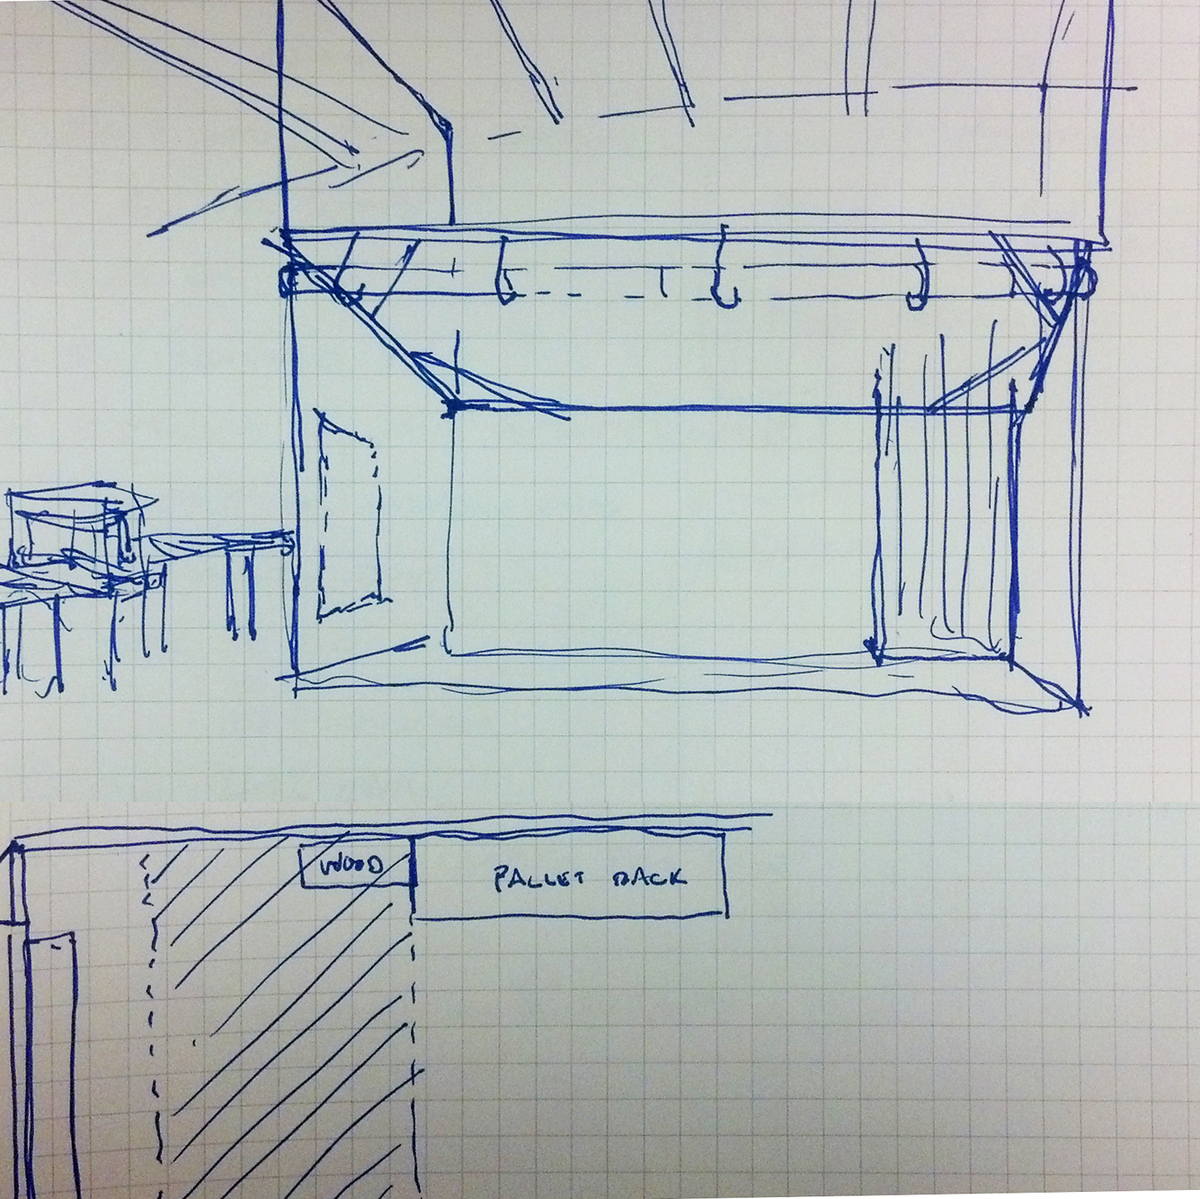 Sketch of proposed Clean Room